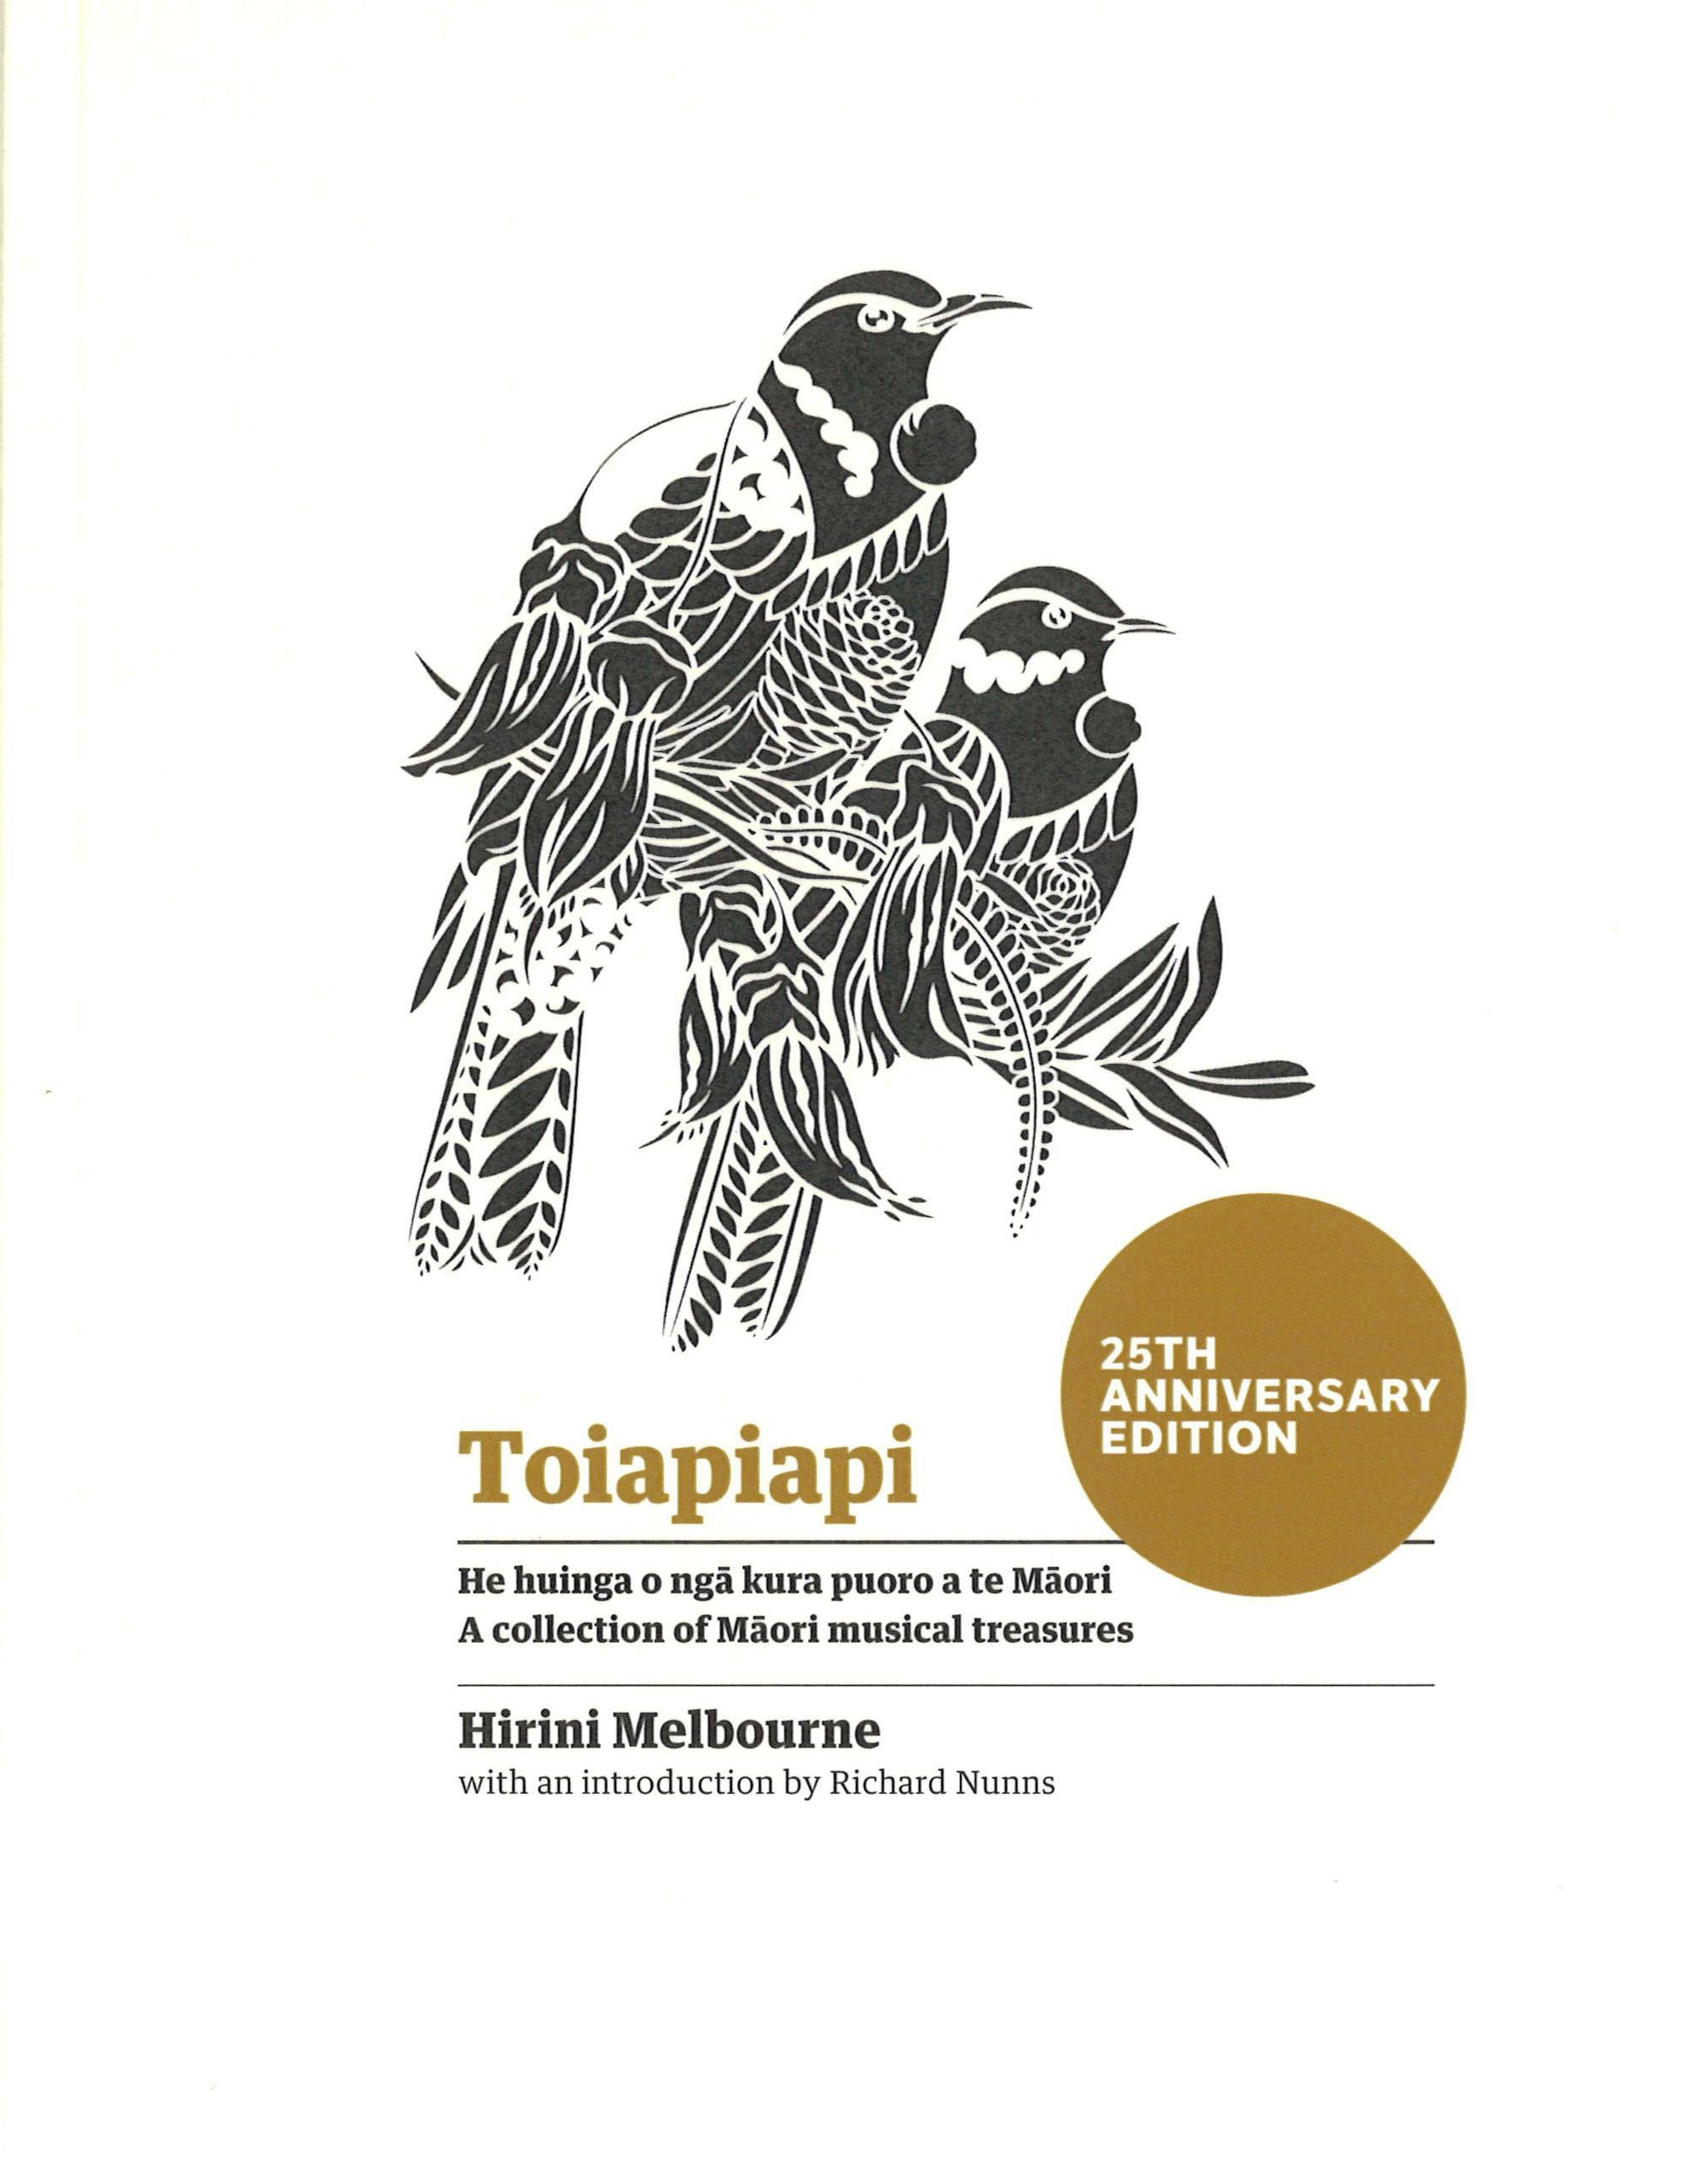 Toiapiapi – A Collection Of Maori Musical Treasures (CD & Book)